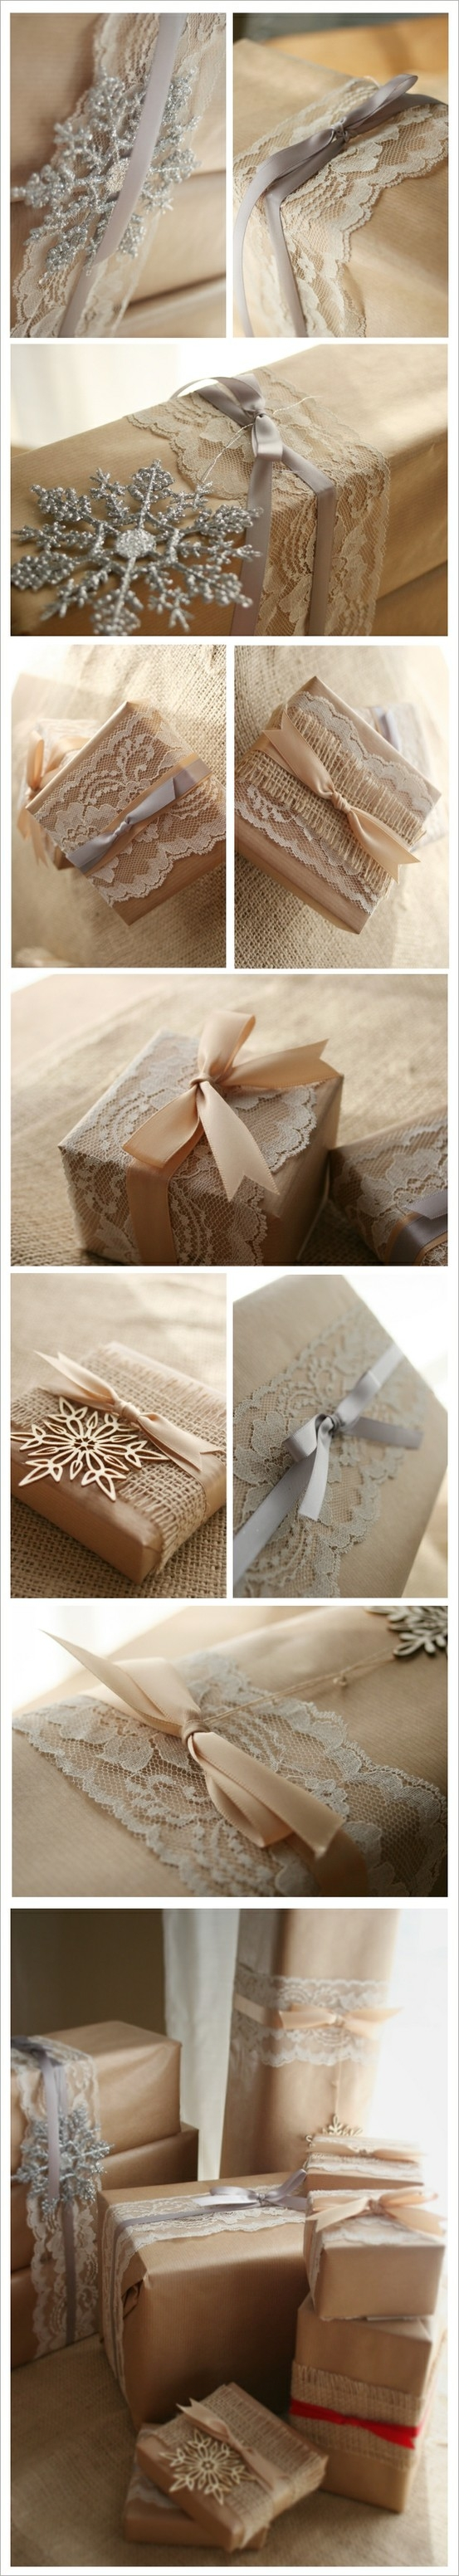 Craft paper and lace